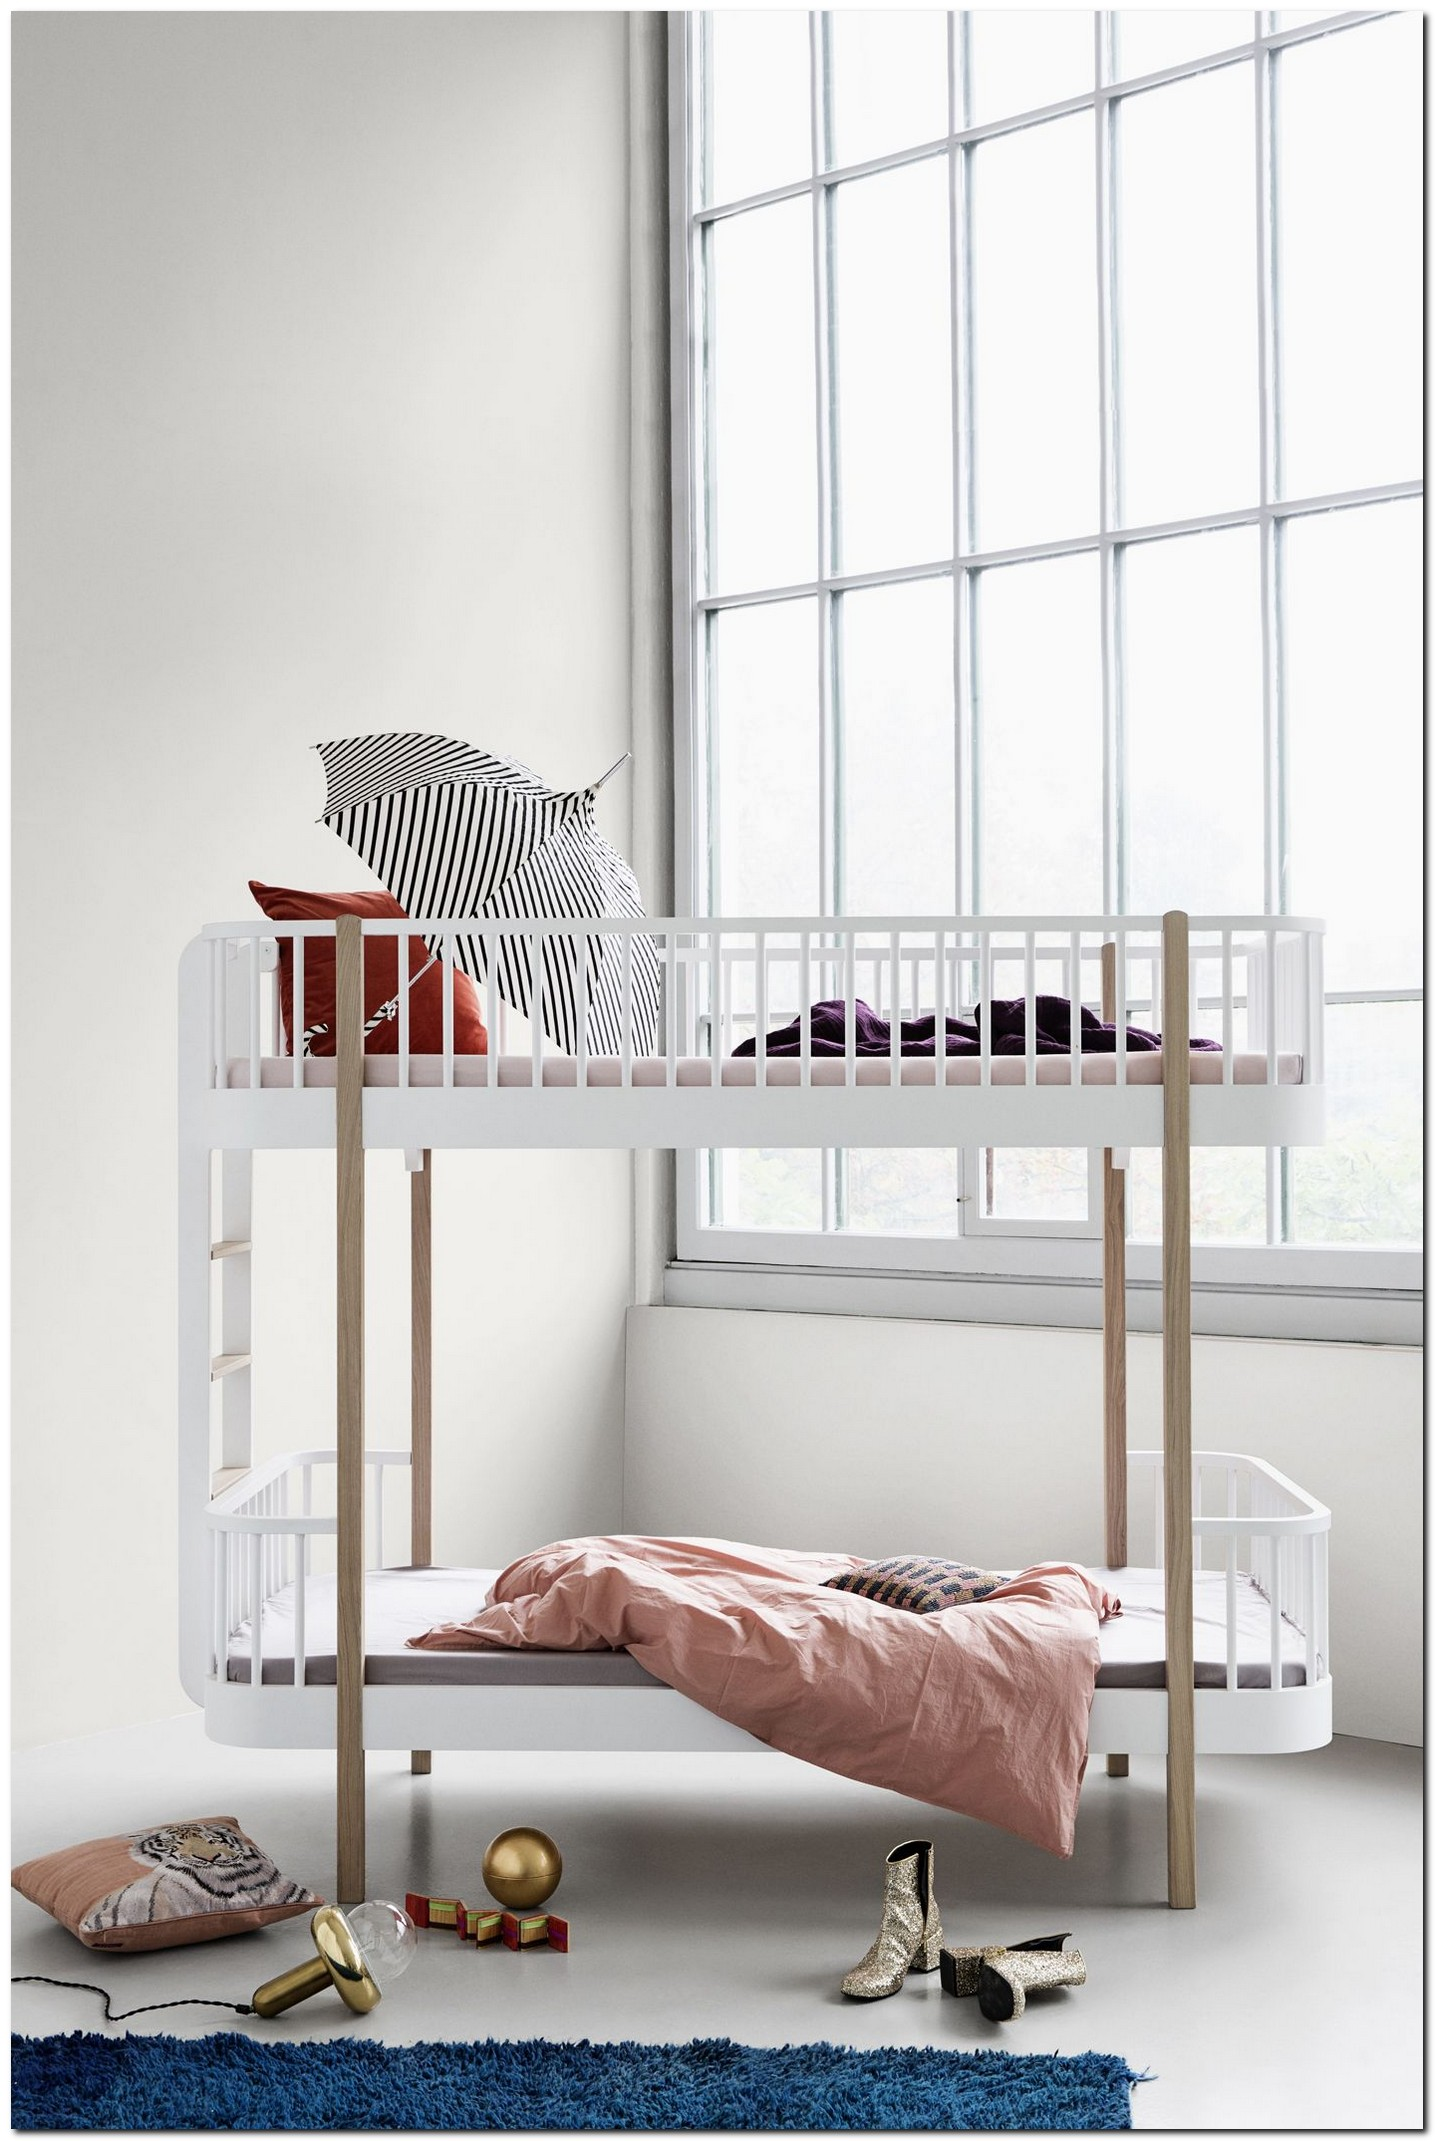 Permit your children to rest comfortably on bunk beds for kids 2